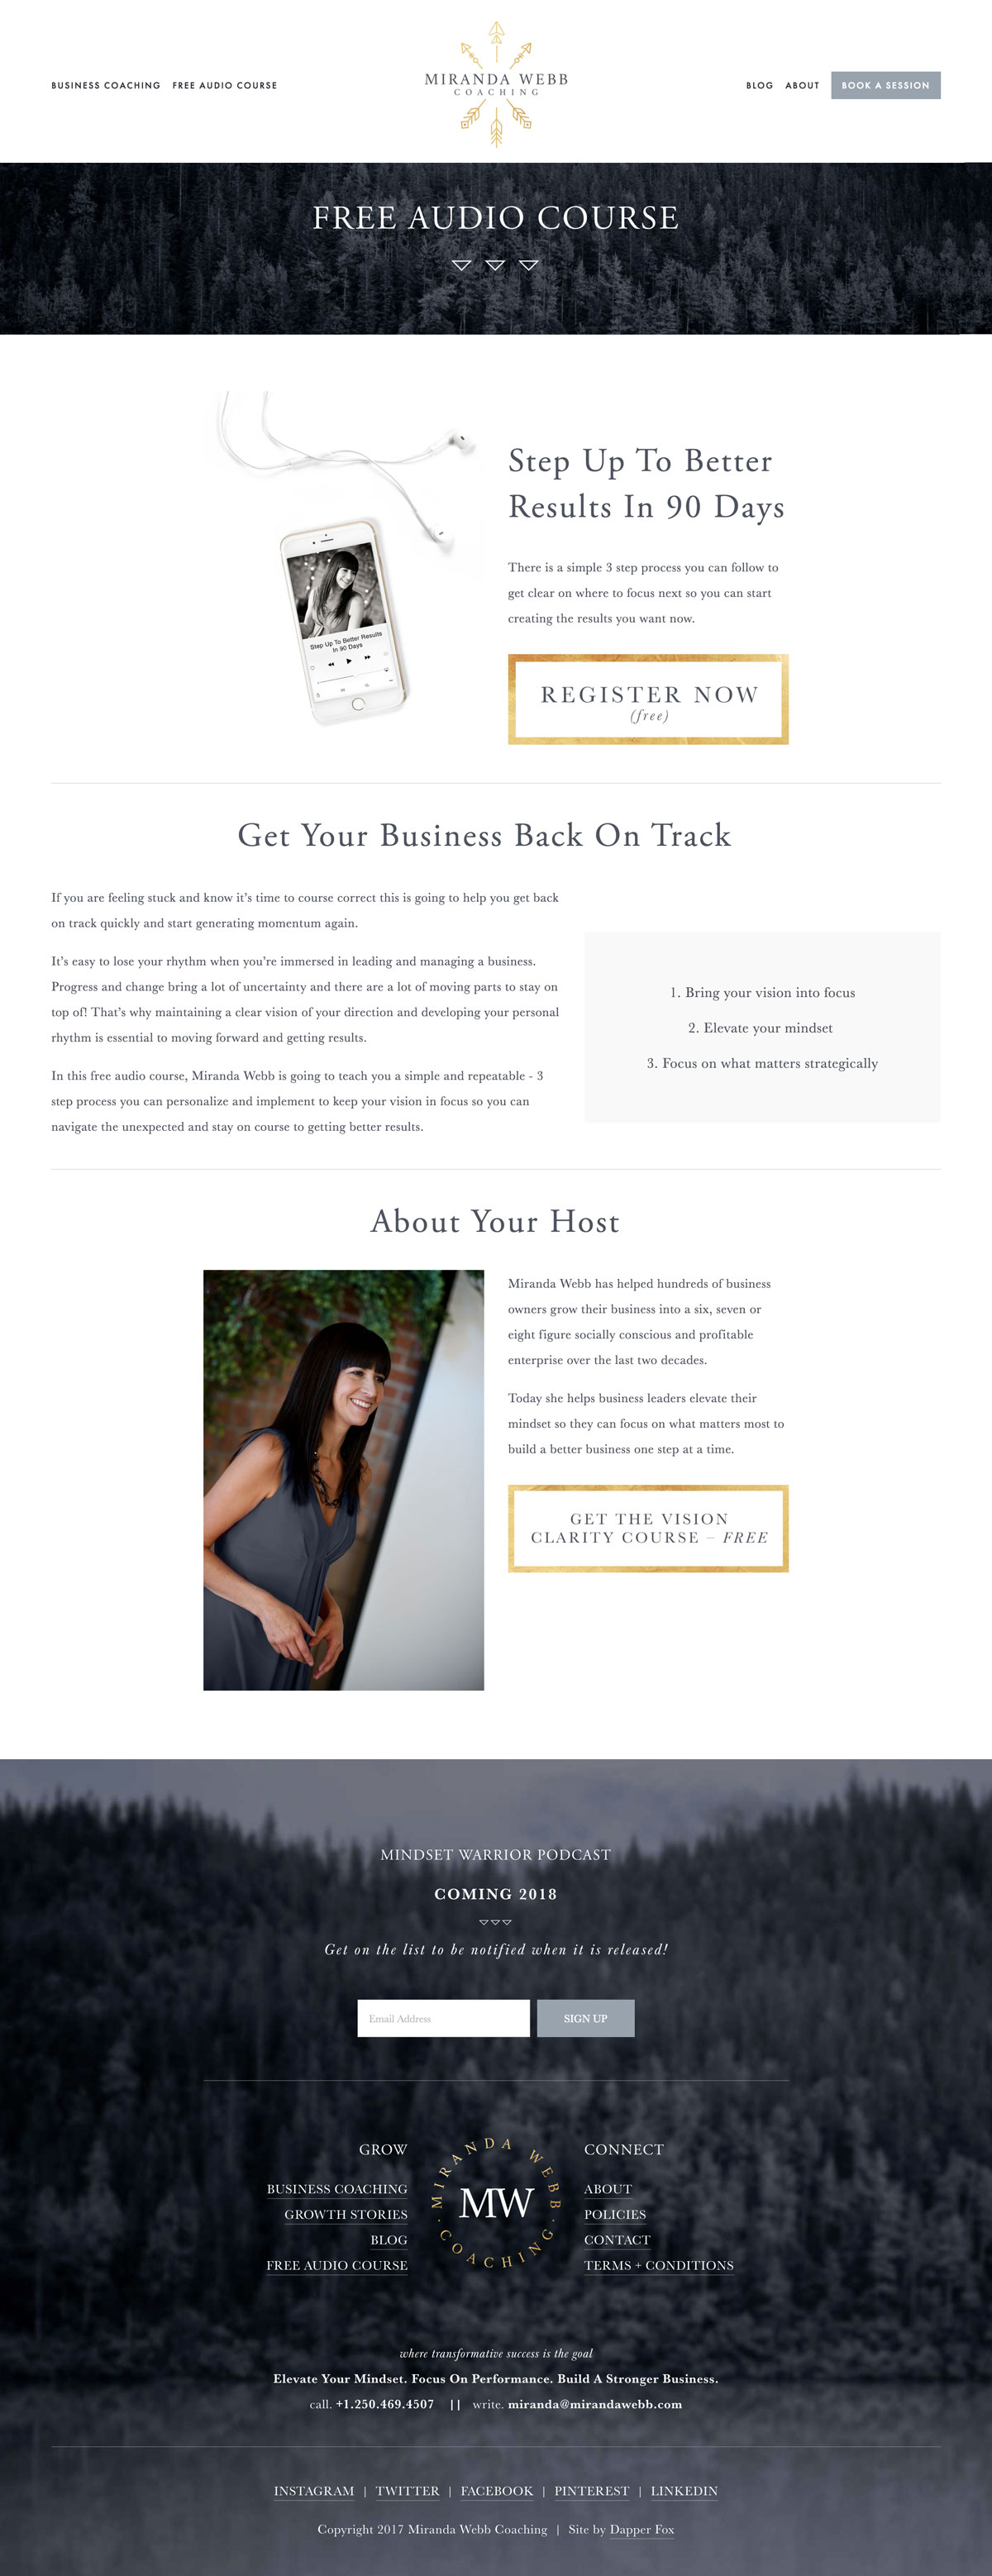 Audio Course on Squarespace Website for Business Coaches by Dapper Fox